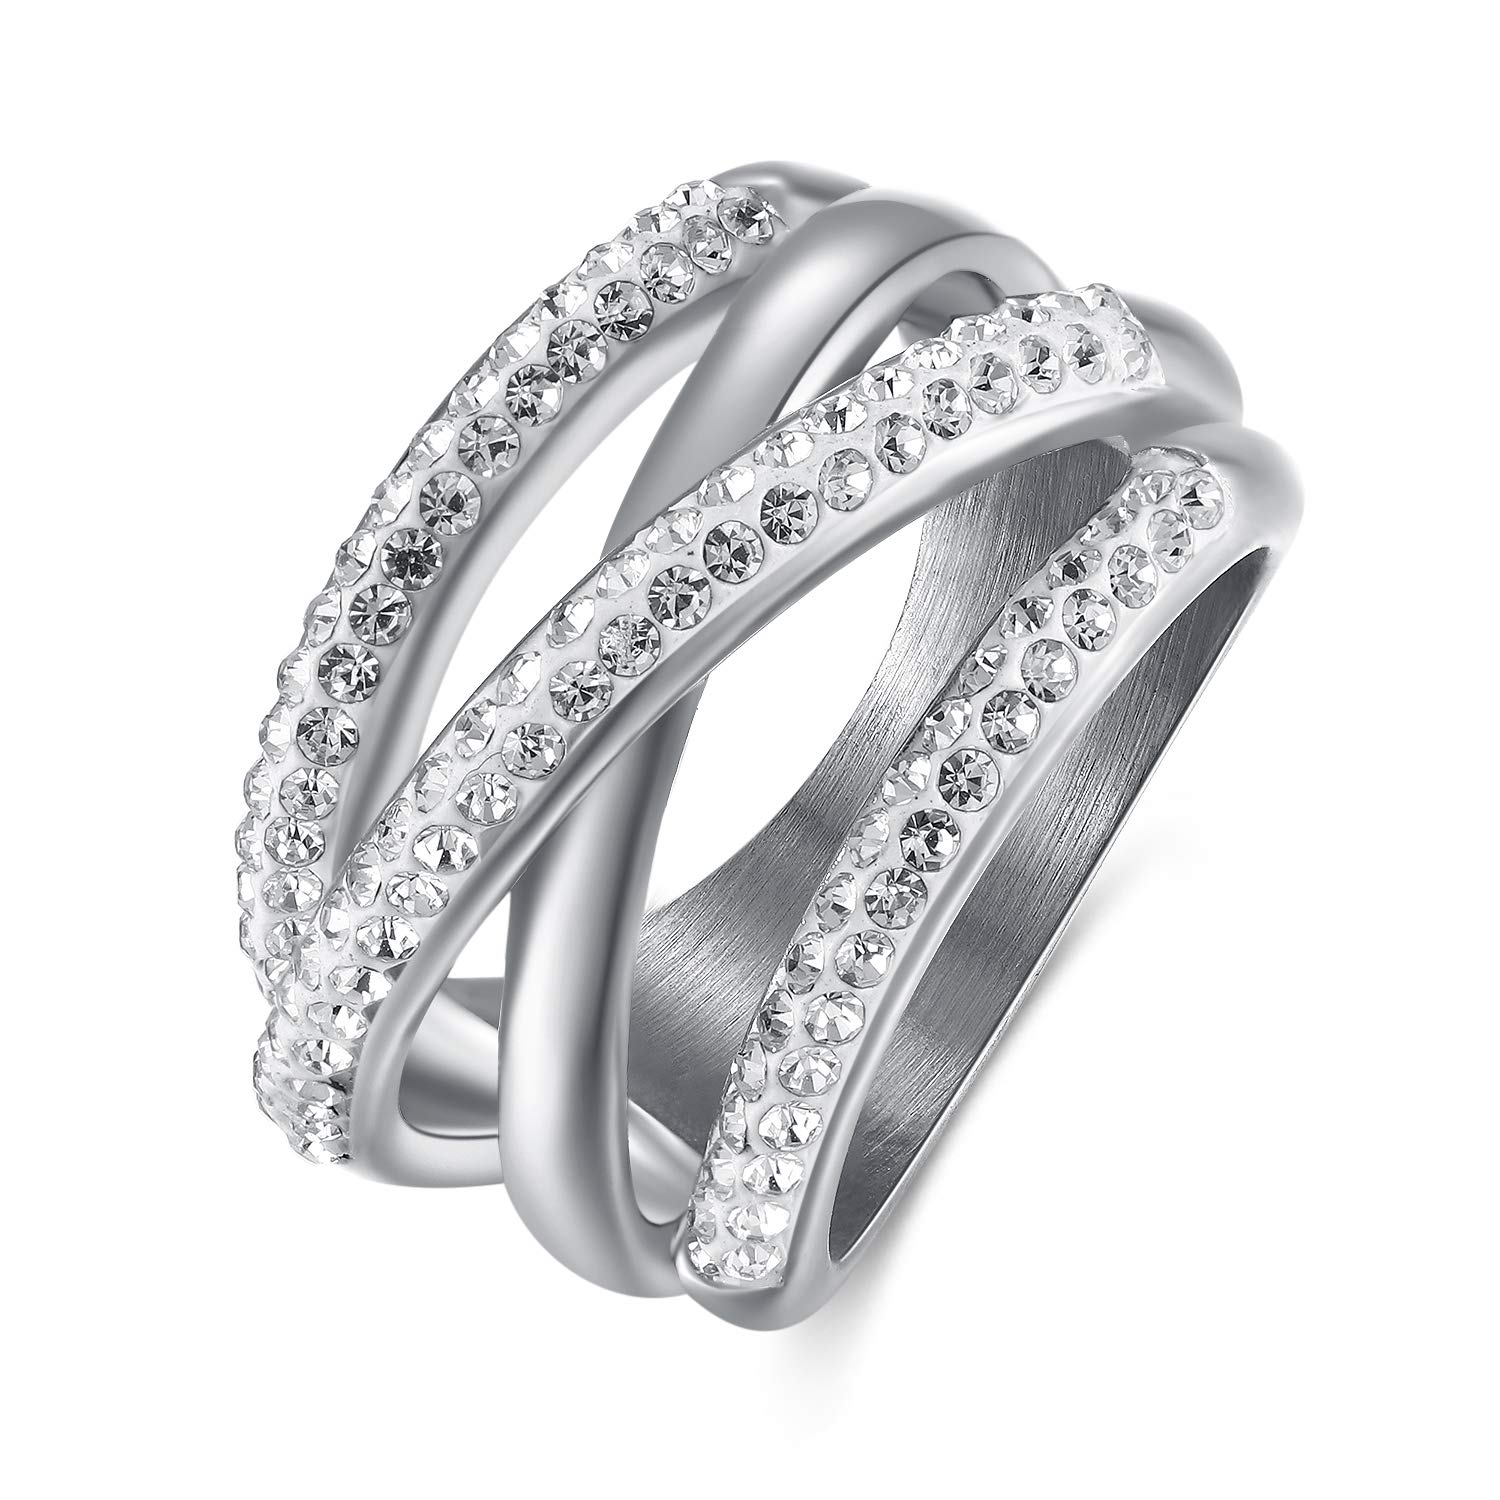 LOGAGA 14MM Wide Cross Rings for Women Cubic Zirconia Ring Stainless Steel Plated Statement Engagement Promise Rings Enhancers Jewelry (7 Size) by LOGAGA